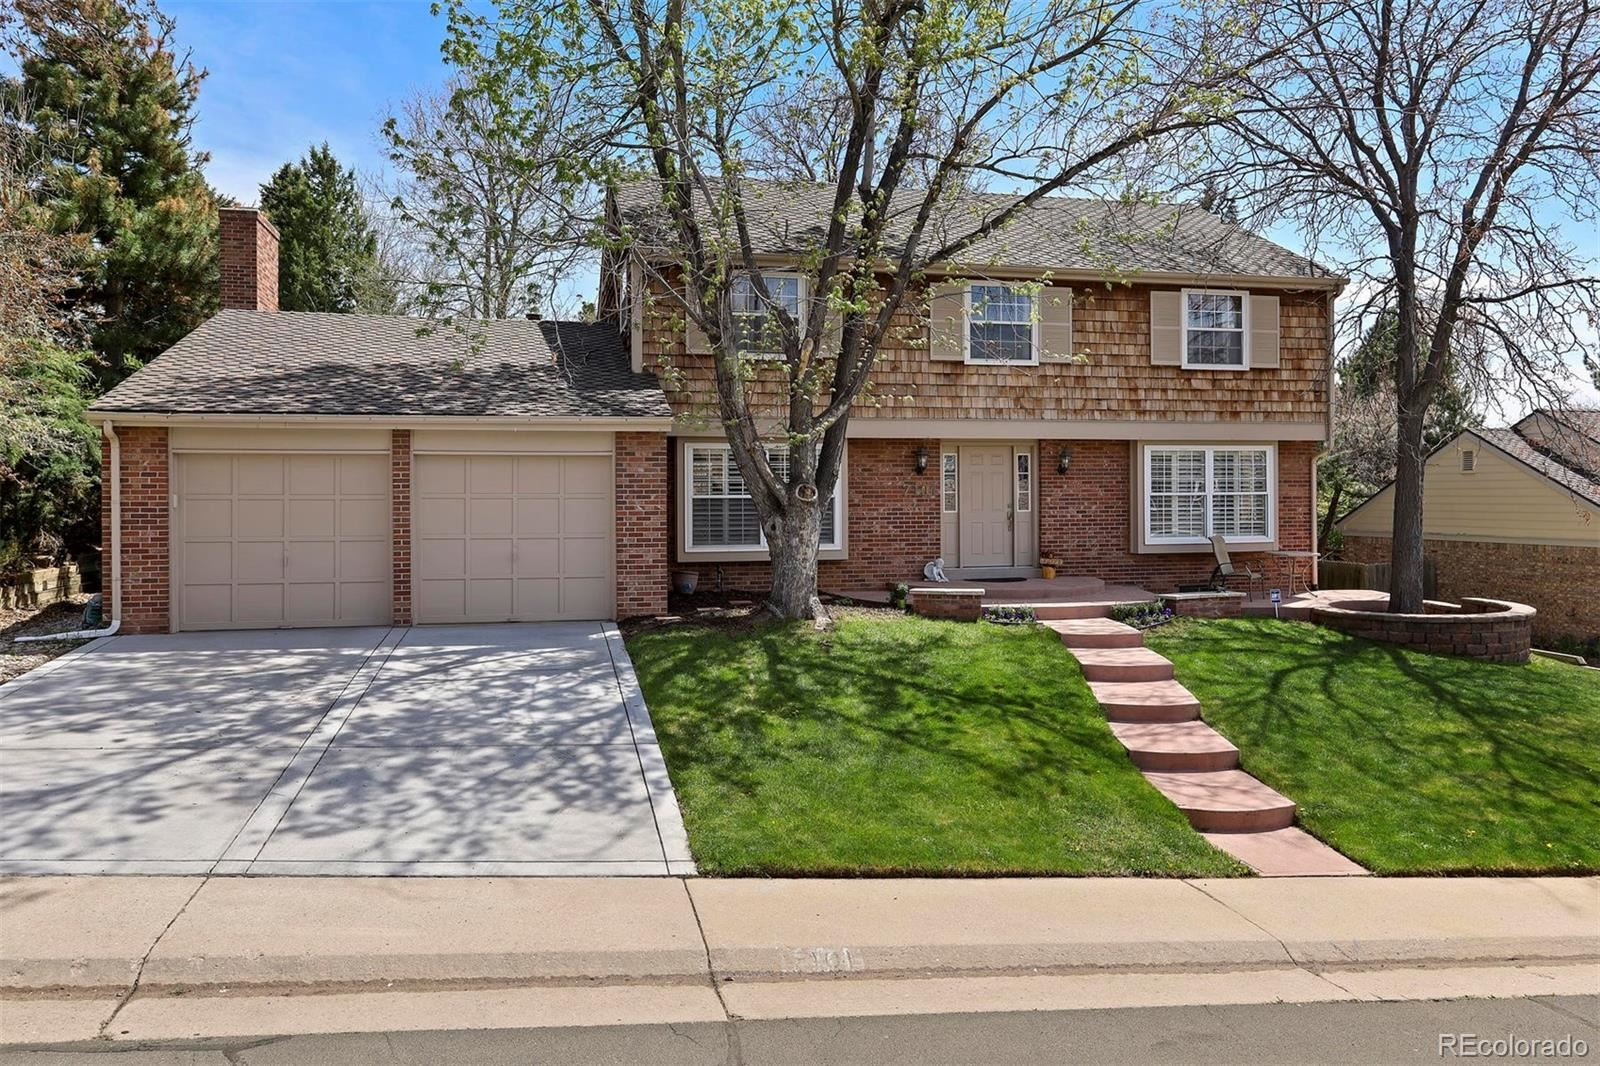 7101 S Olive Way, Centennial, CO 80112 - #: 4612497